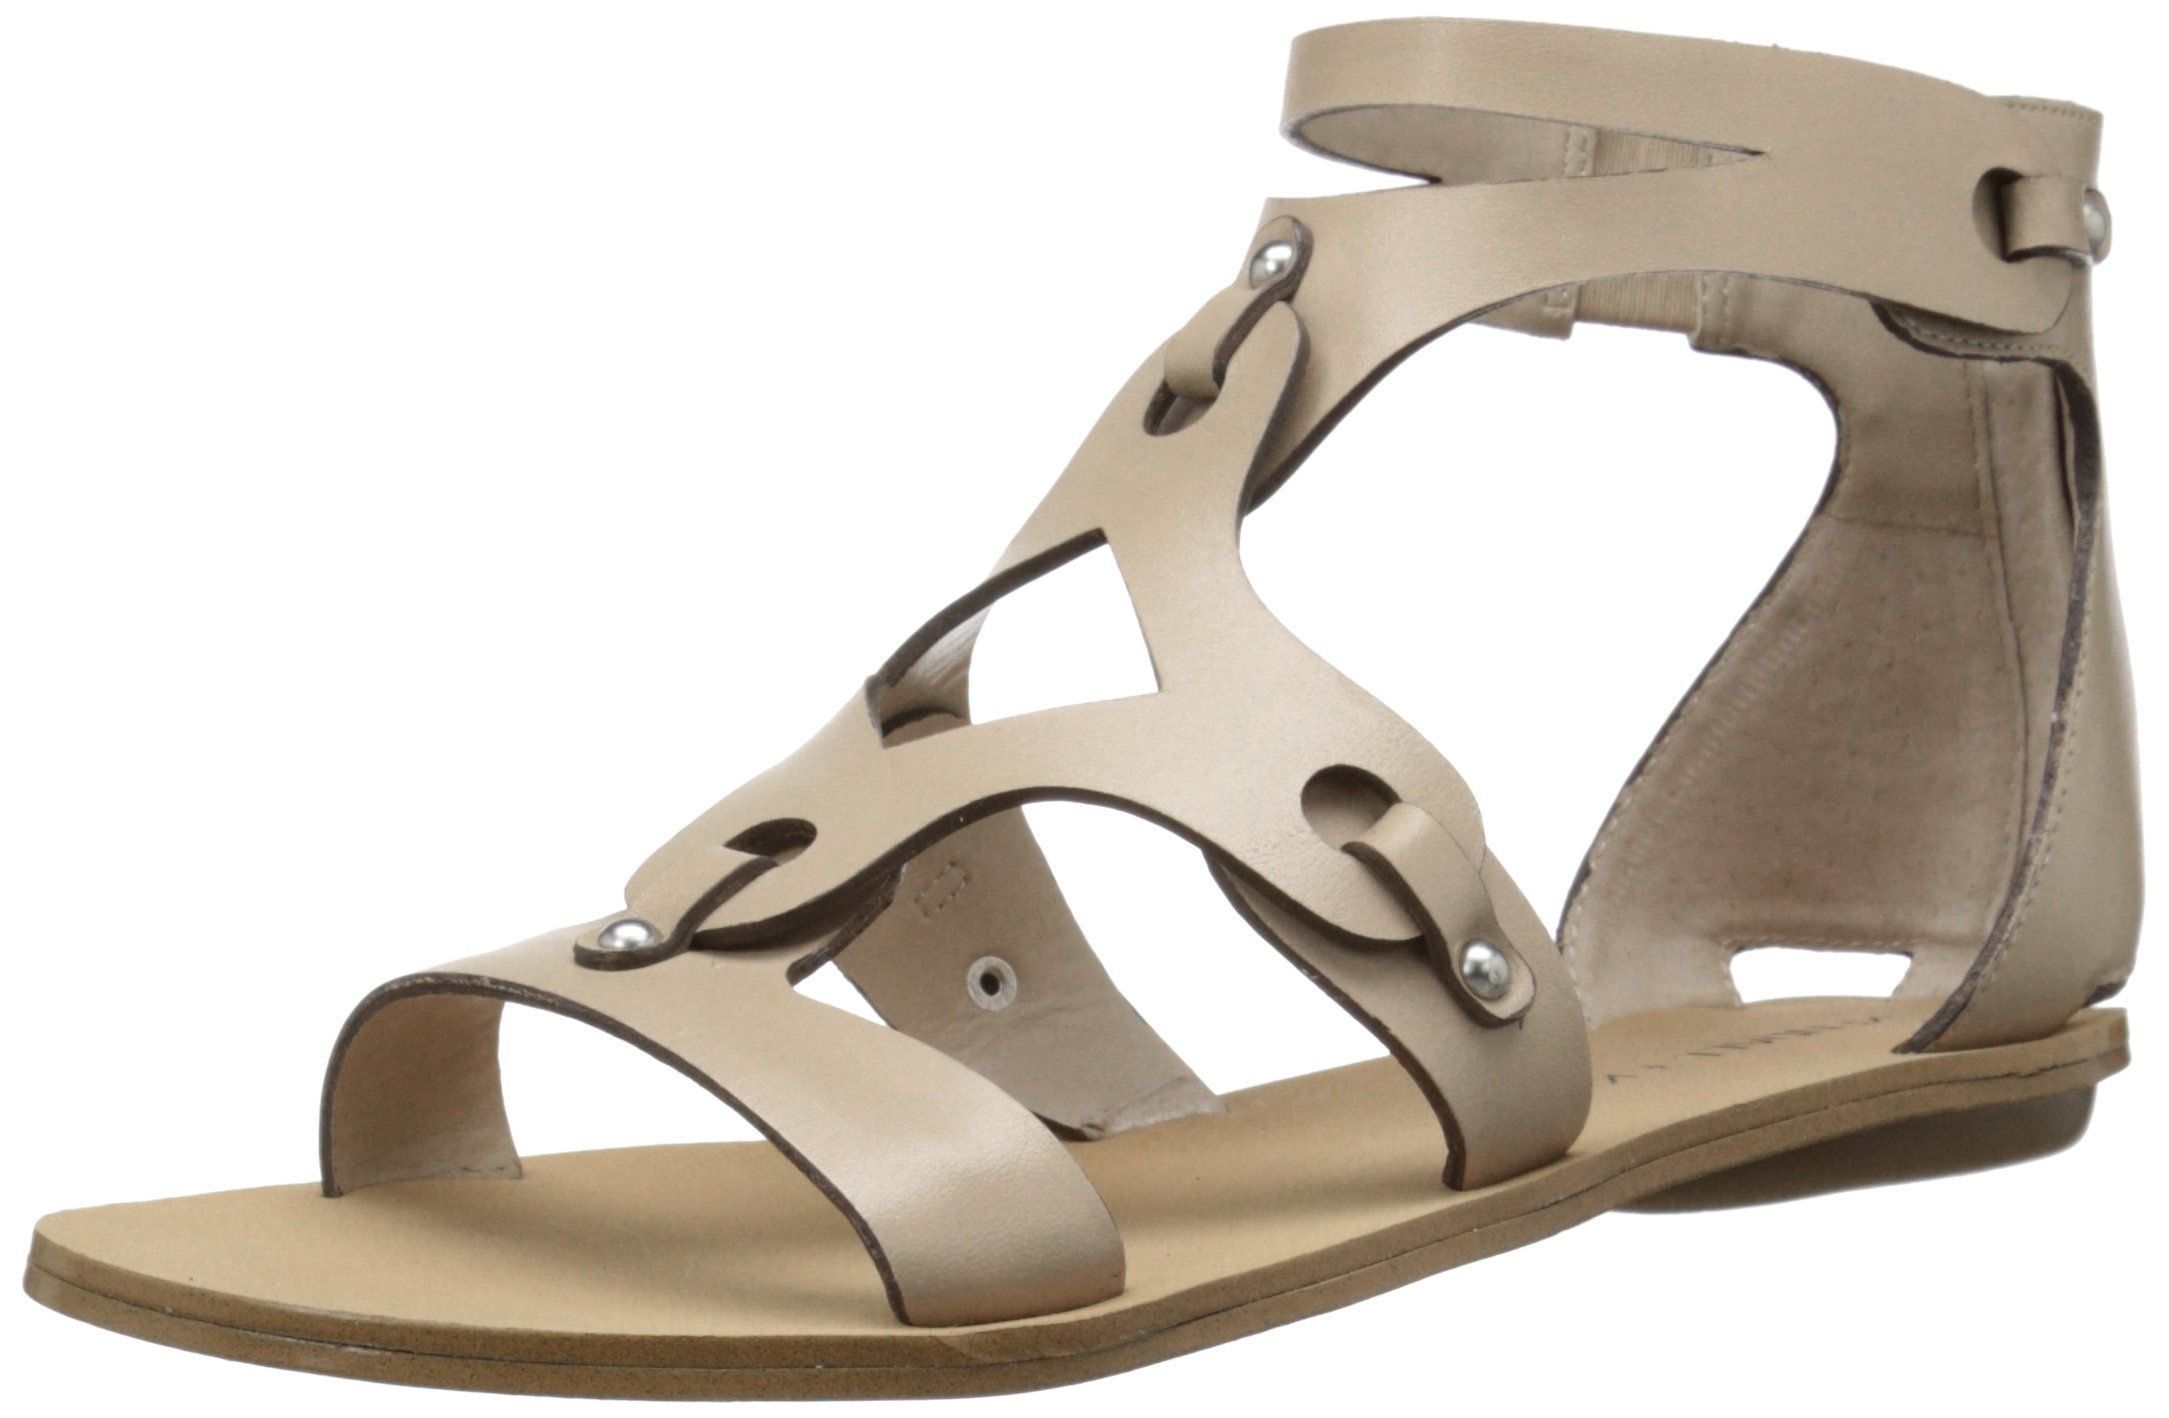 4537846996a Gladiator-inspired leather sandal with strappy upper featuring covered heel  counter with zip closure.